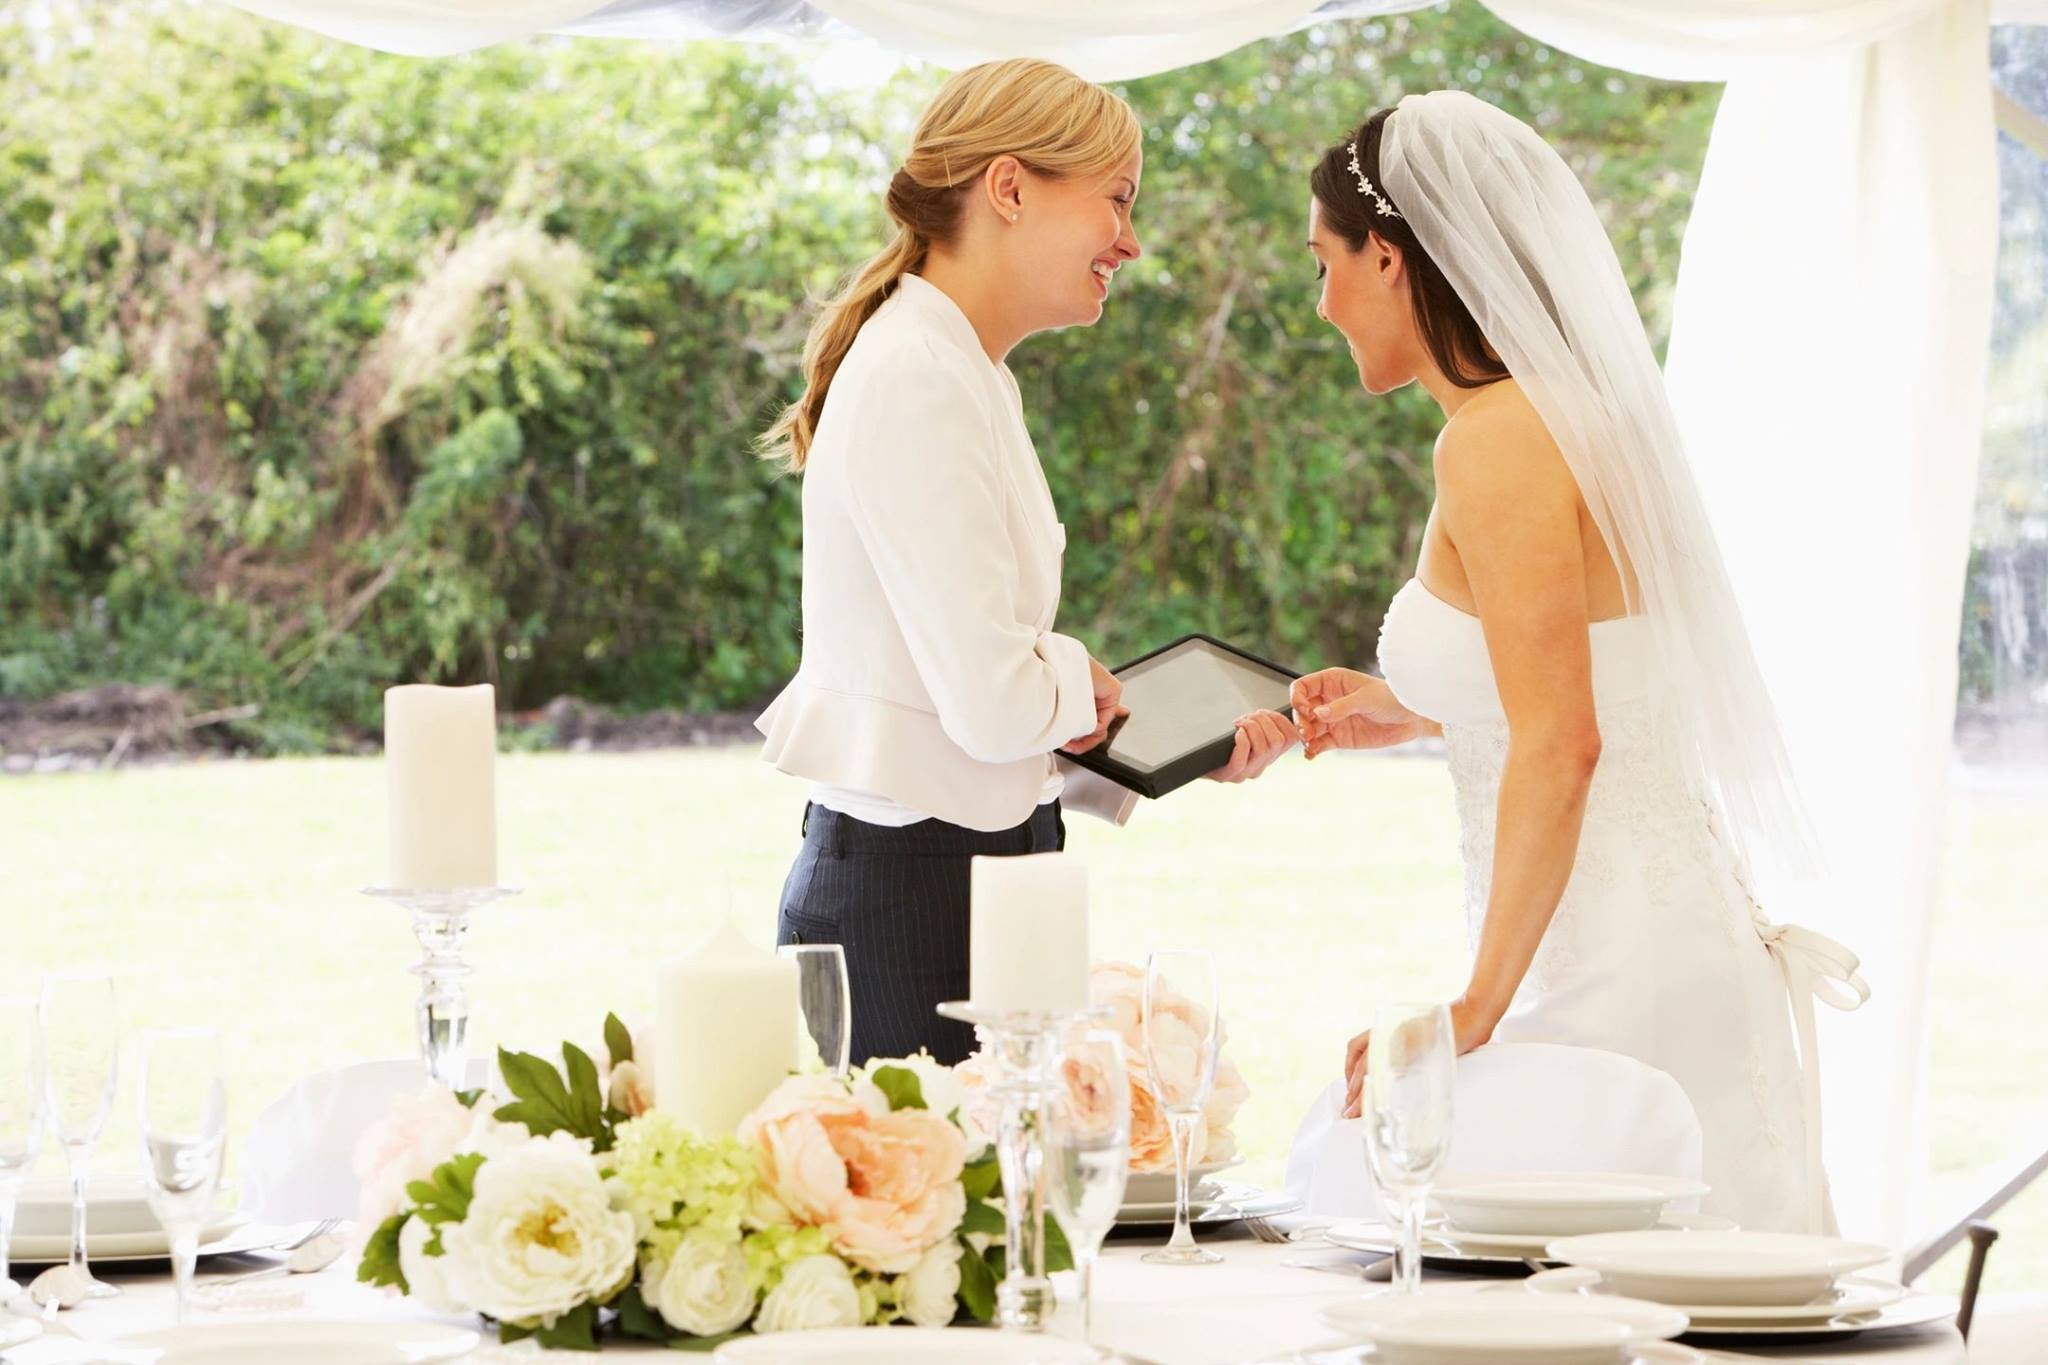 Reviews for Malta Weddings